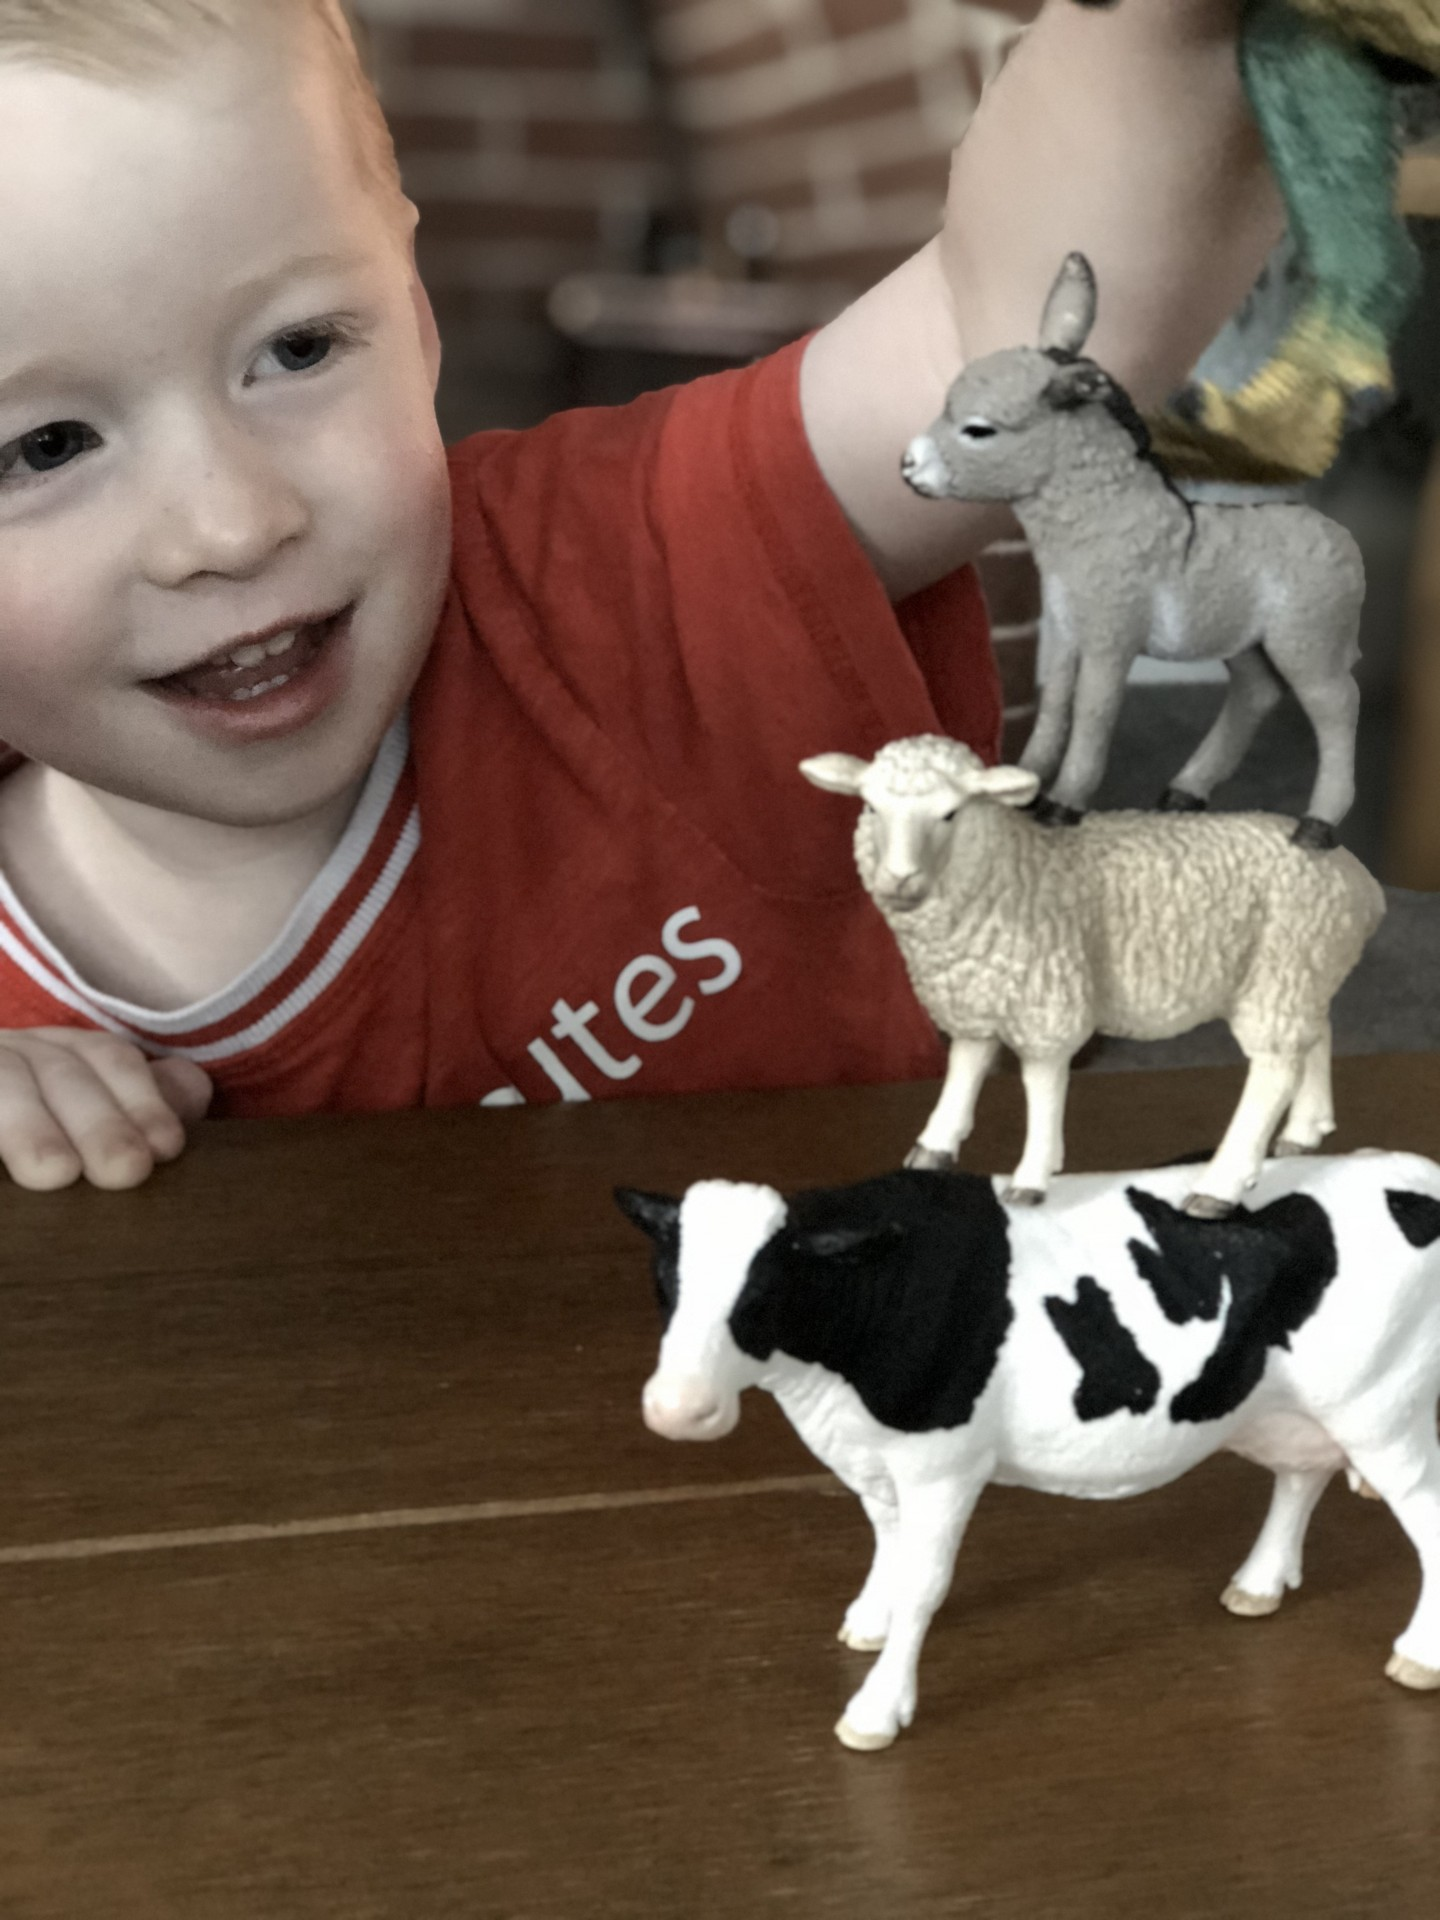 review schleich toys george at asda farm world starters set solid imaginative play creativity